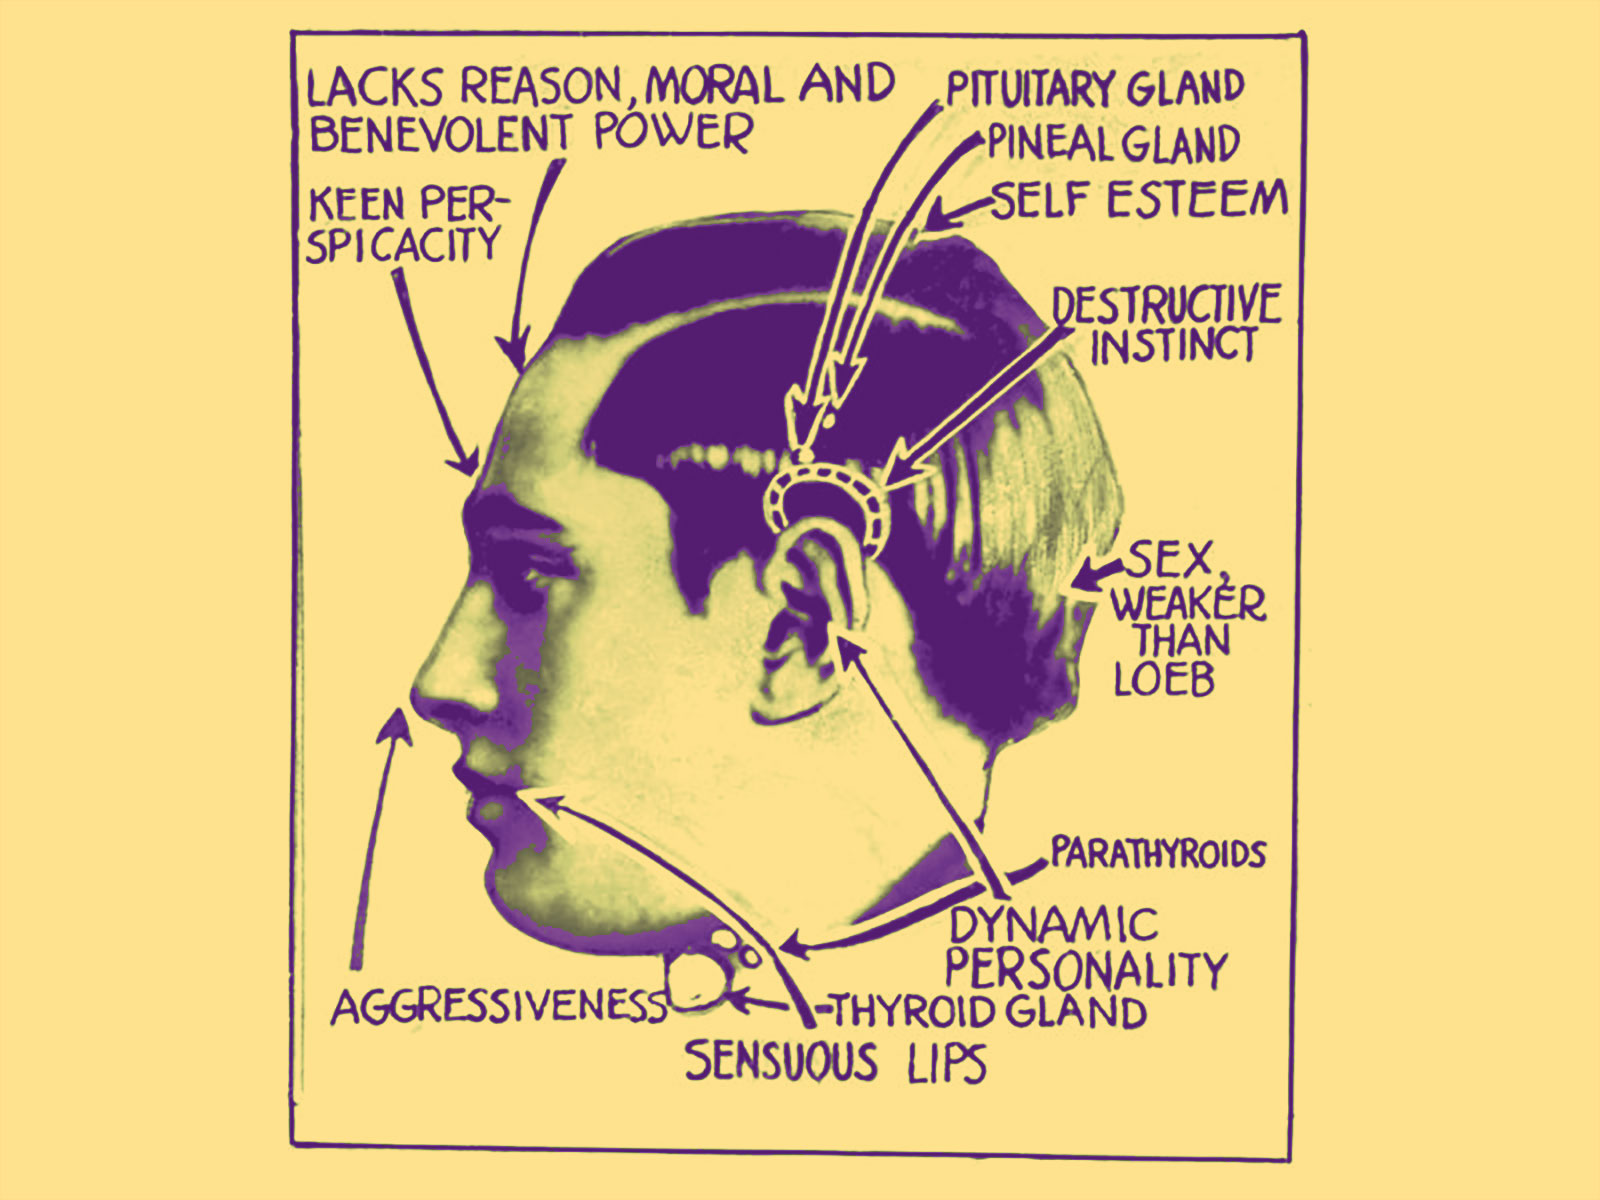 Phrenological Diagram, Leopold and Loeb